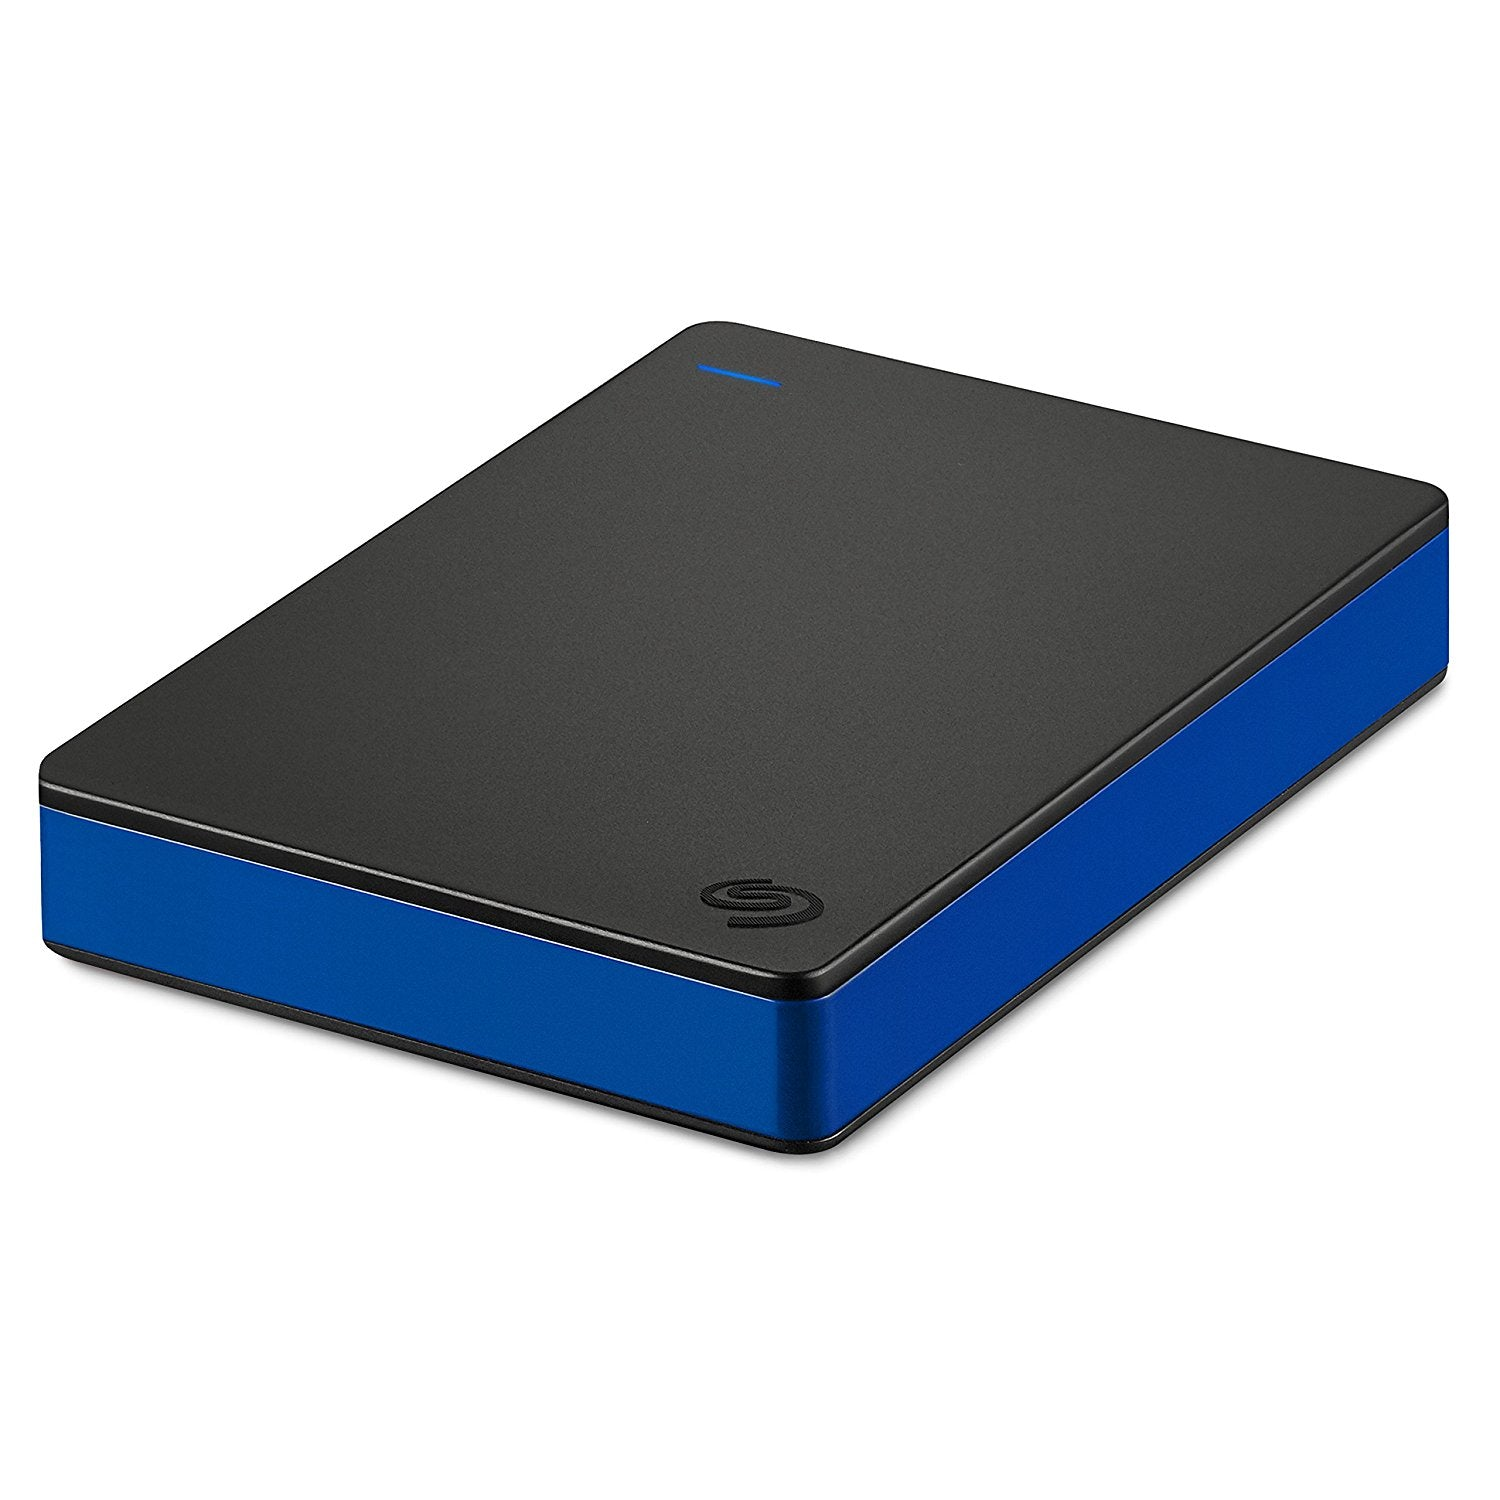 Seagate 4TB Game Drive for Playstation 4 Portable external USB Hard Drive